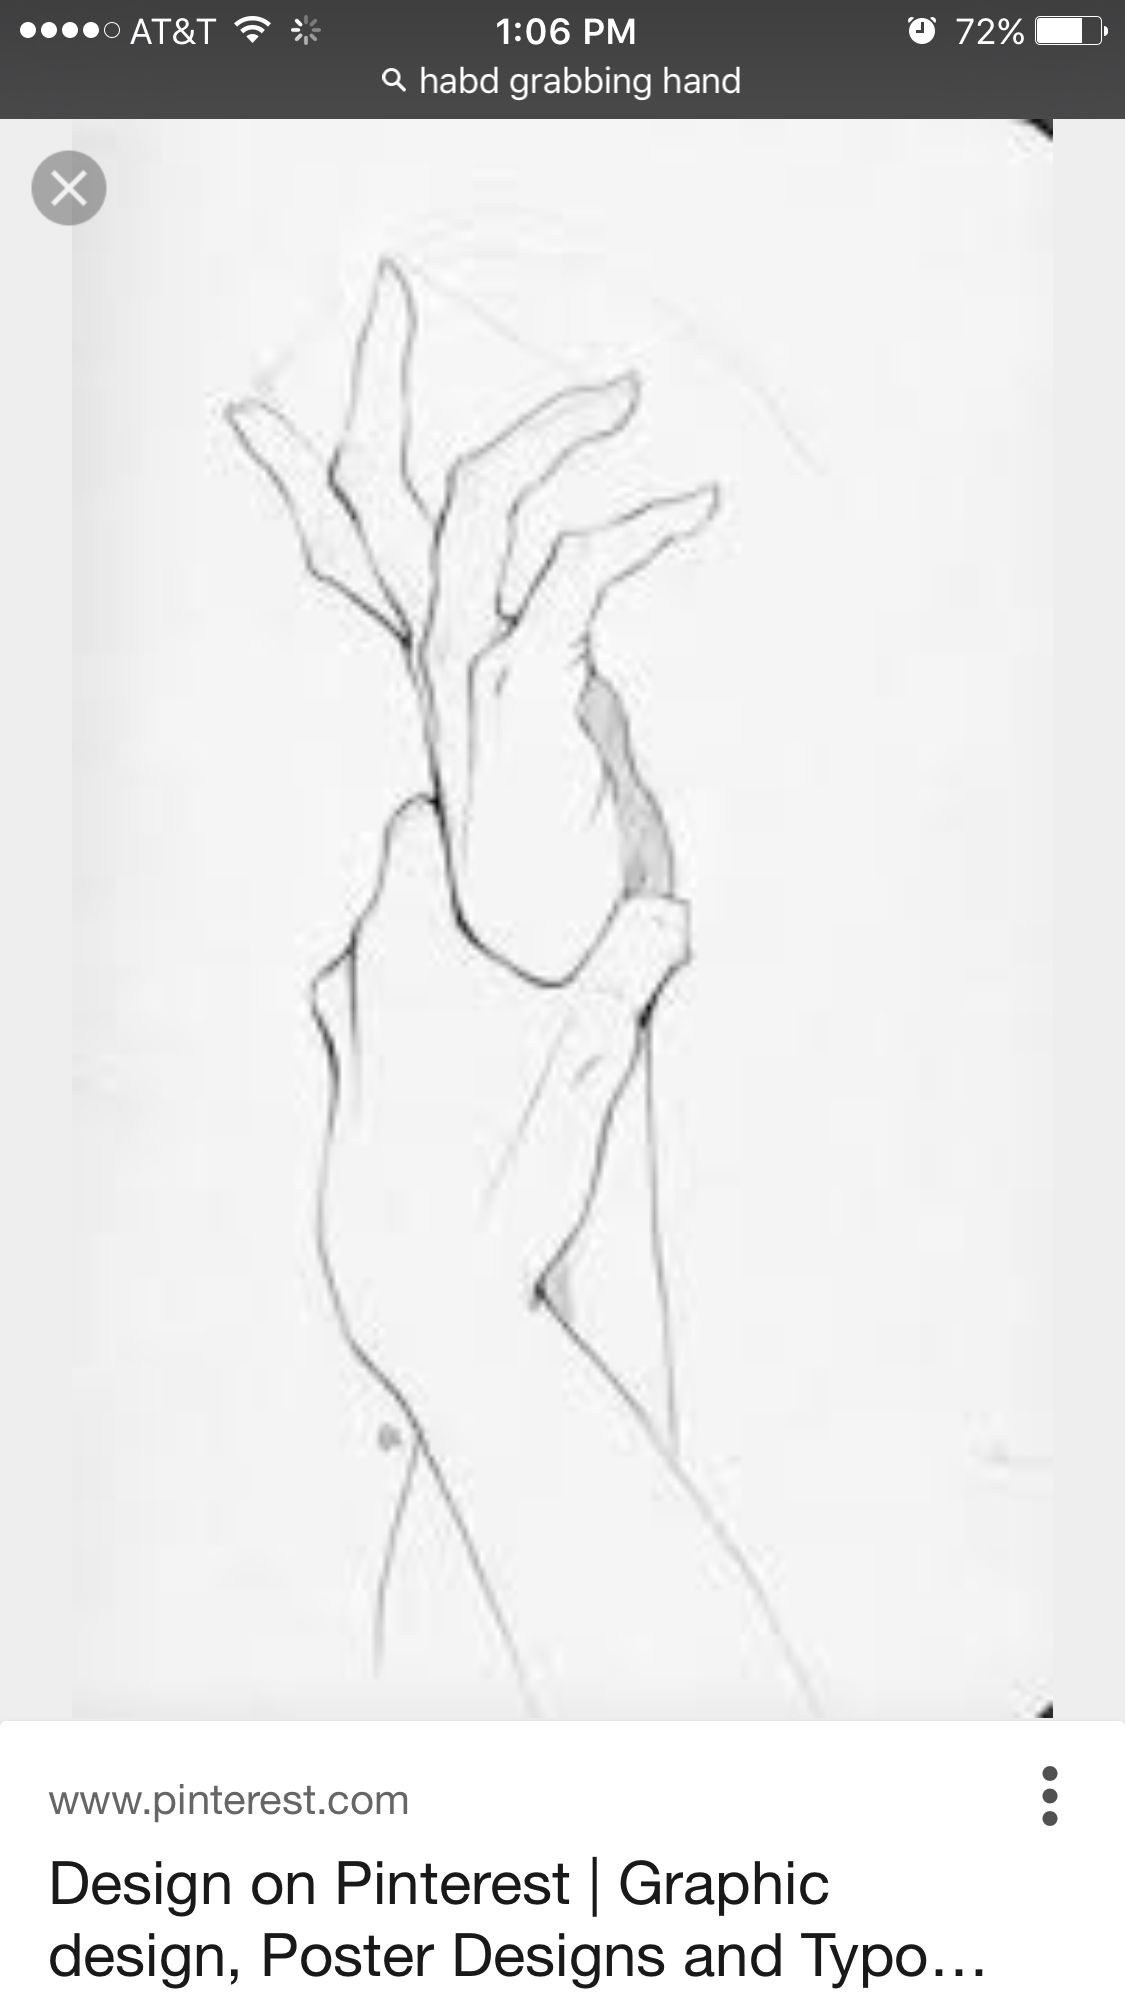 Hand references for drawing grabbing wrist